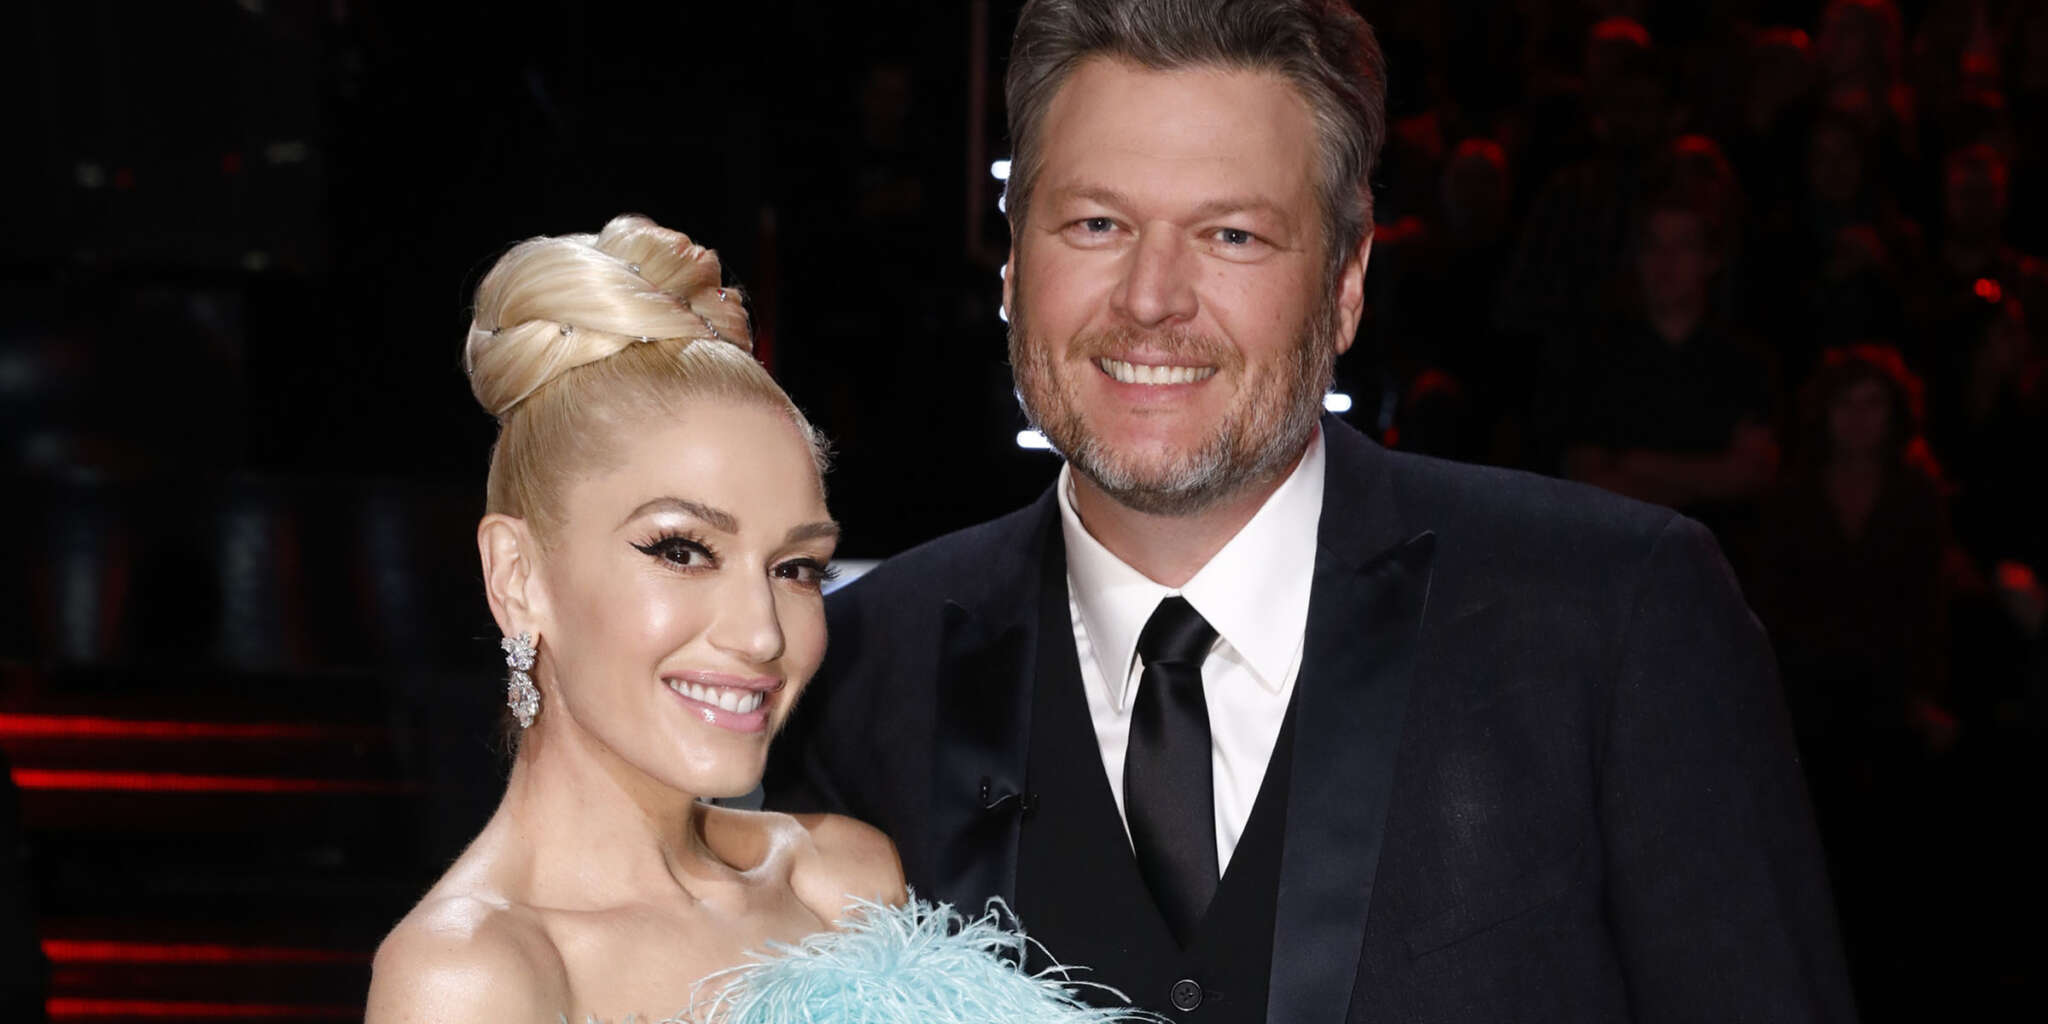 gwen-stefani-reveals-exclusive-details-about-her-engagement-says-that-both-she-and-blake-shelton-started-bawling